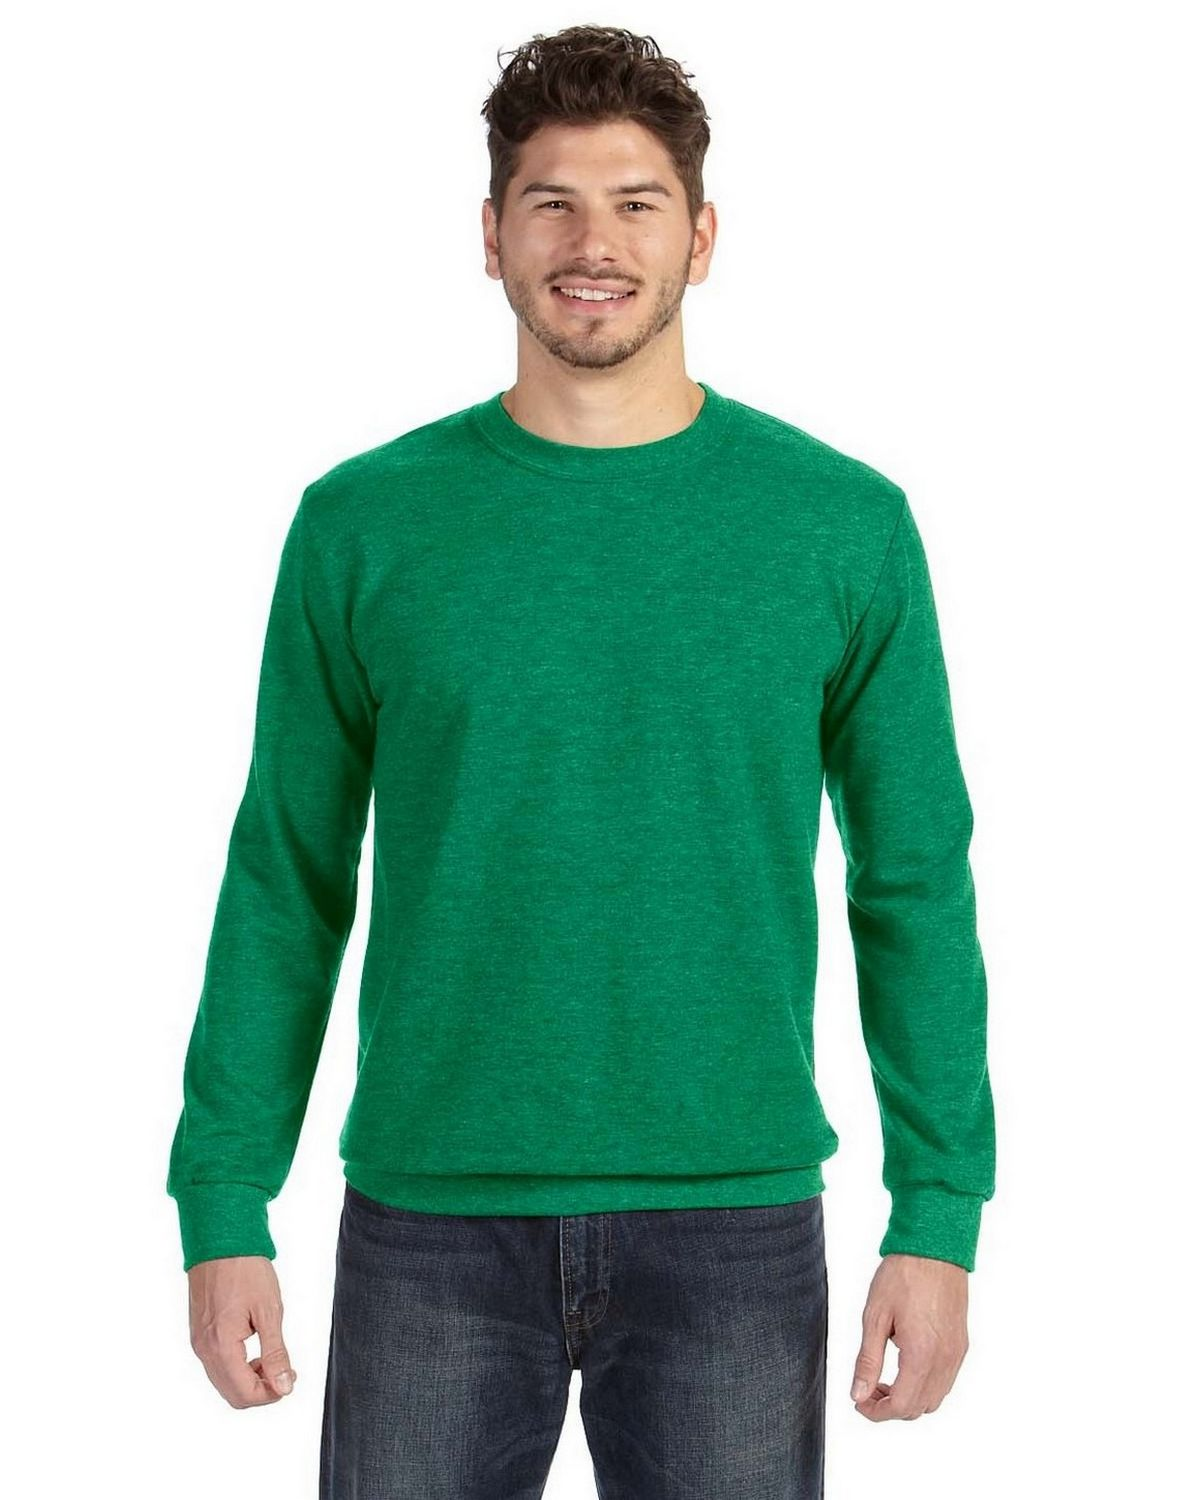 Anvil 72000 Men's Ringspun French Terry Crewneck Sweatshirt